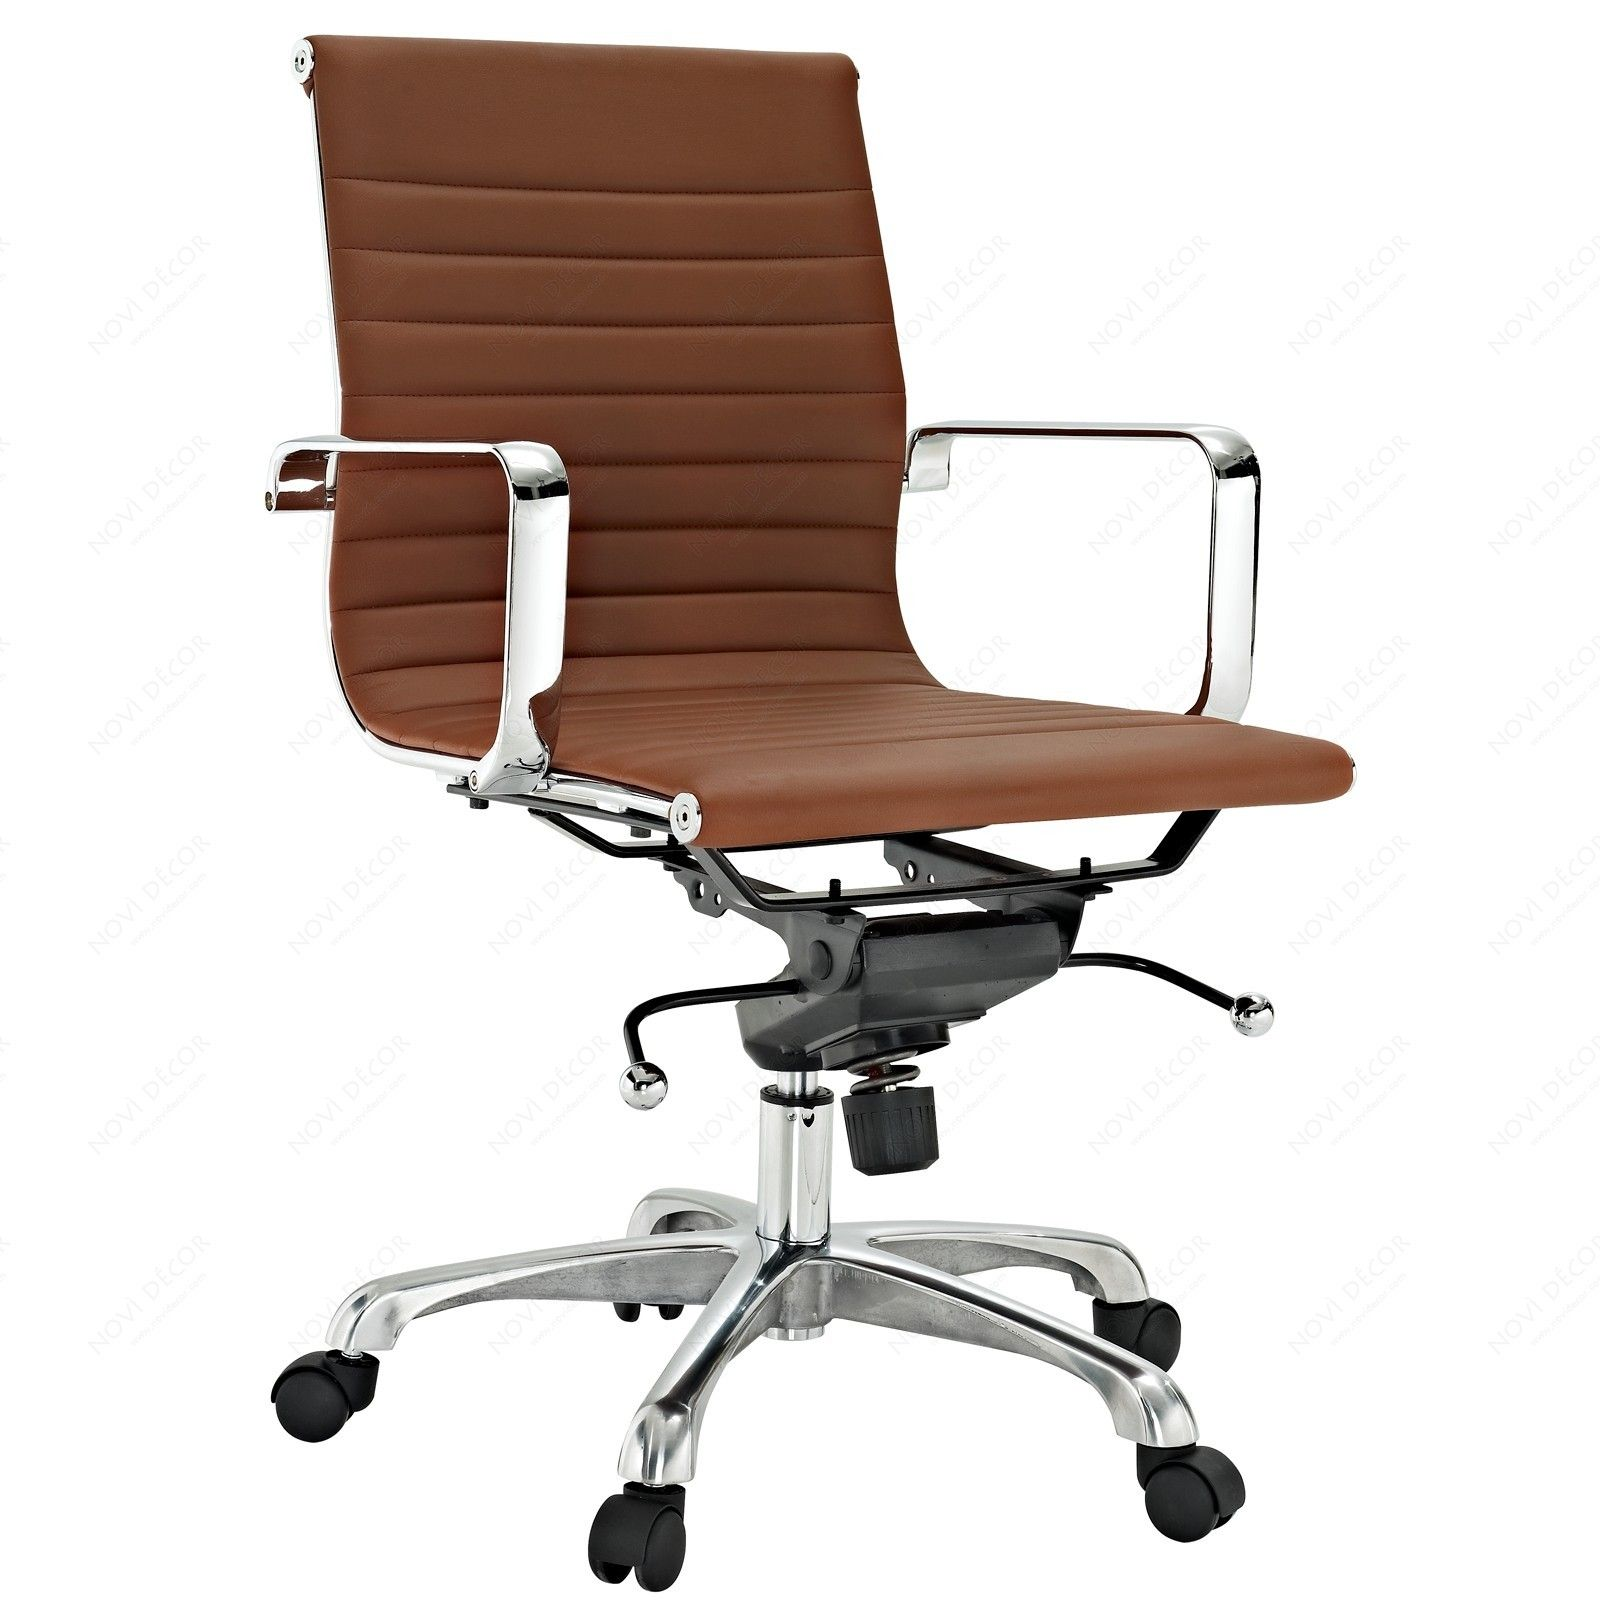 designer office chairs melbourne Skrifbor°sst³lar